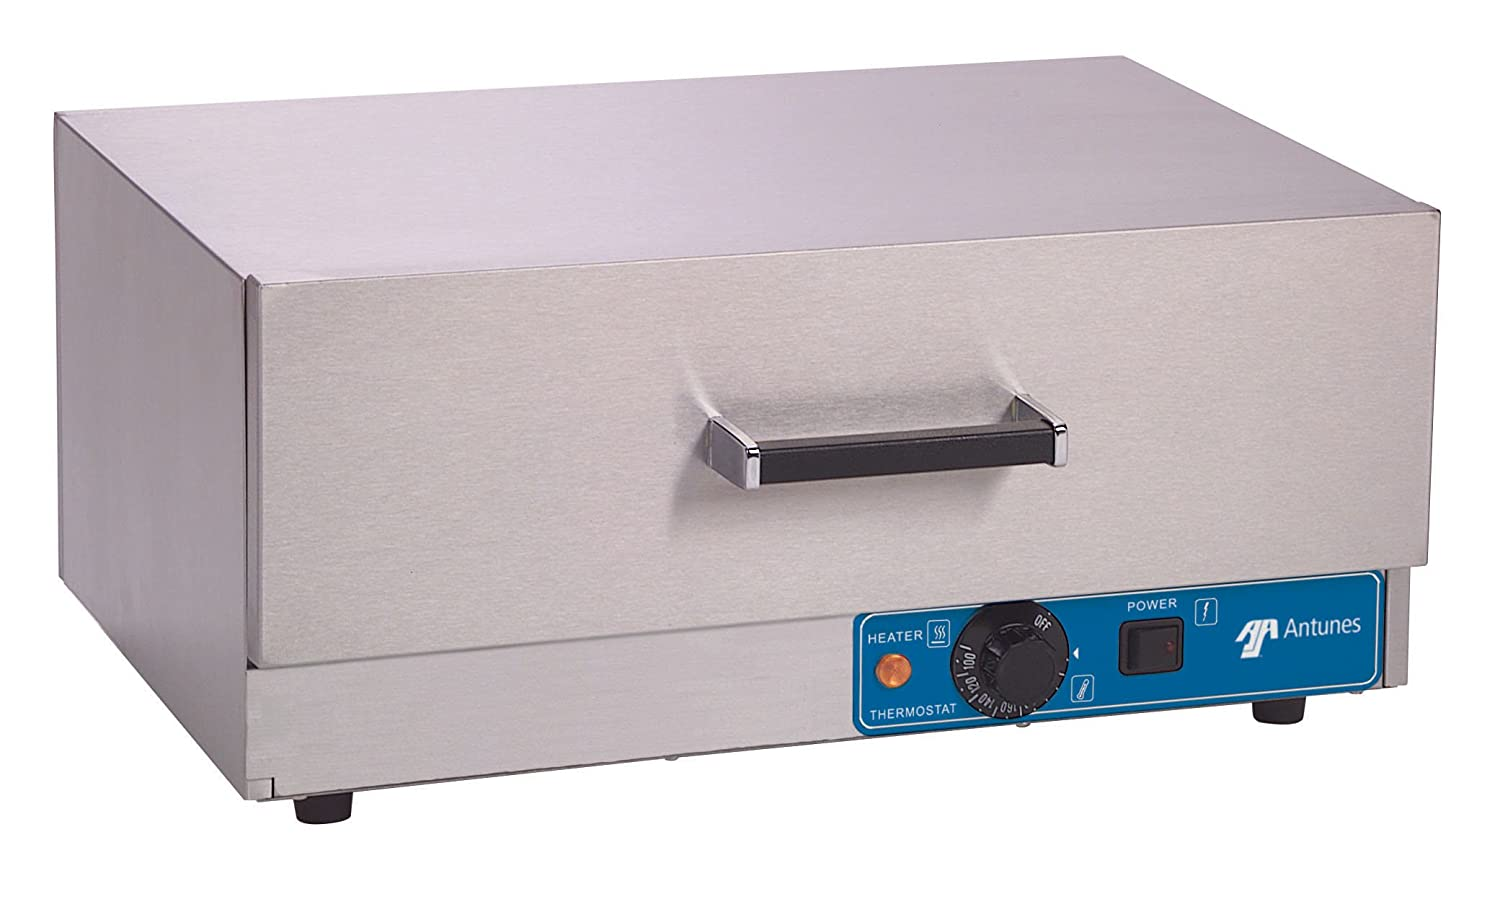 Antunes 9400130 WD-20 Warming Drawer, 18.75' Length, 22' Width, 10.25' Height